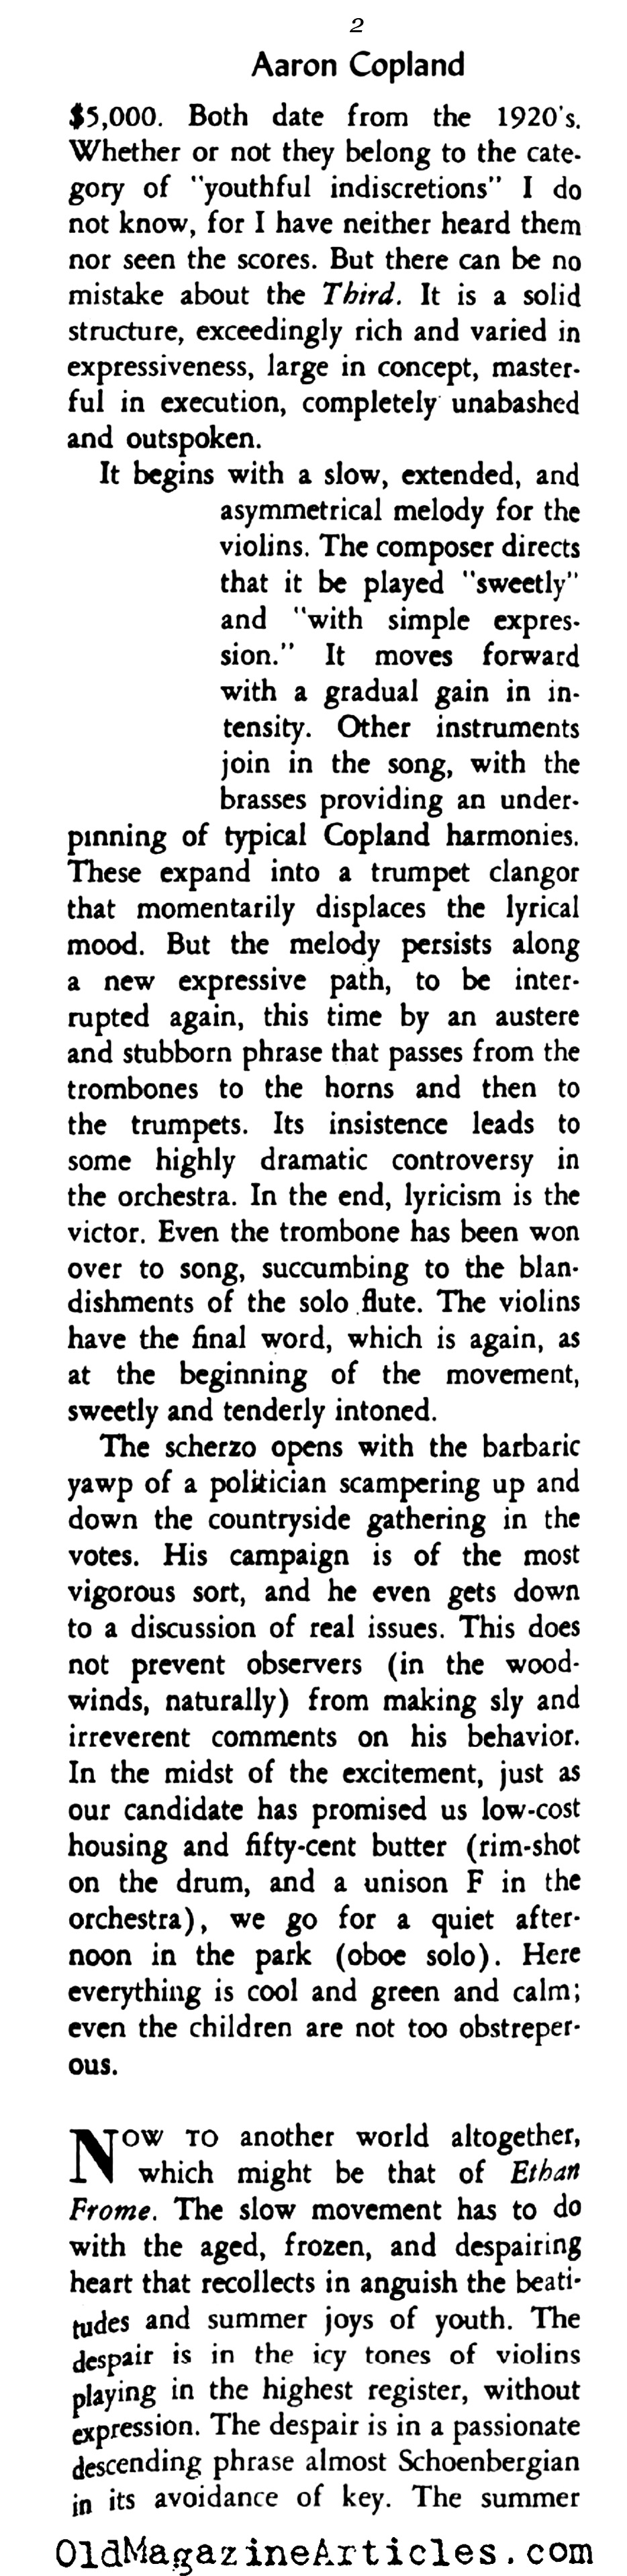 'Third Symphony' by Aaron Copland  (Rob Wagner's Script, 1948)